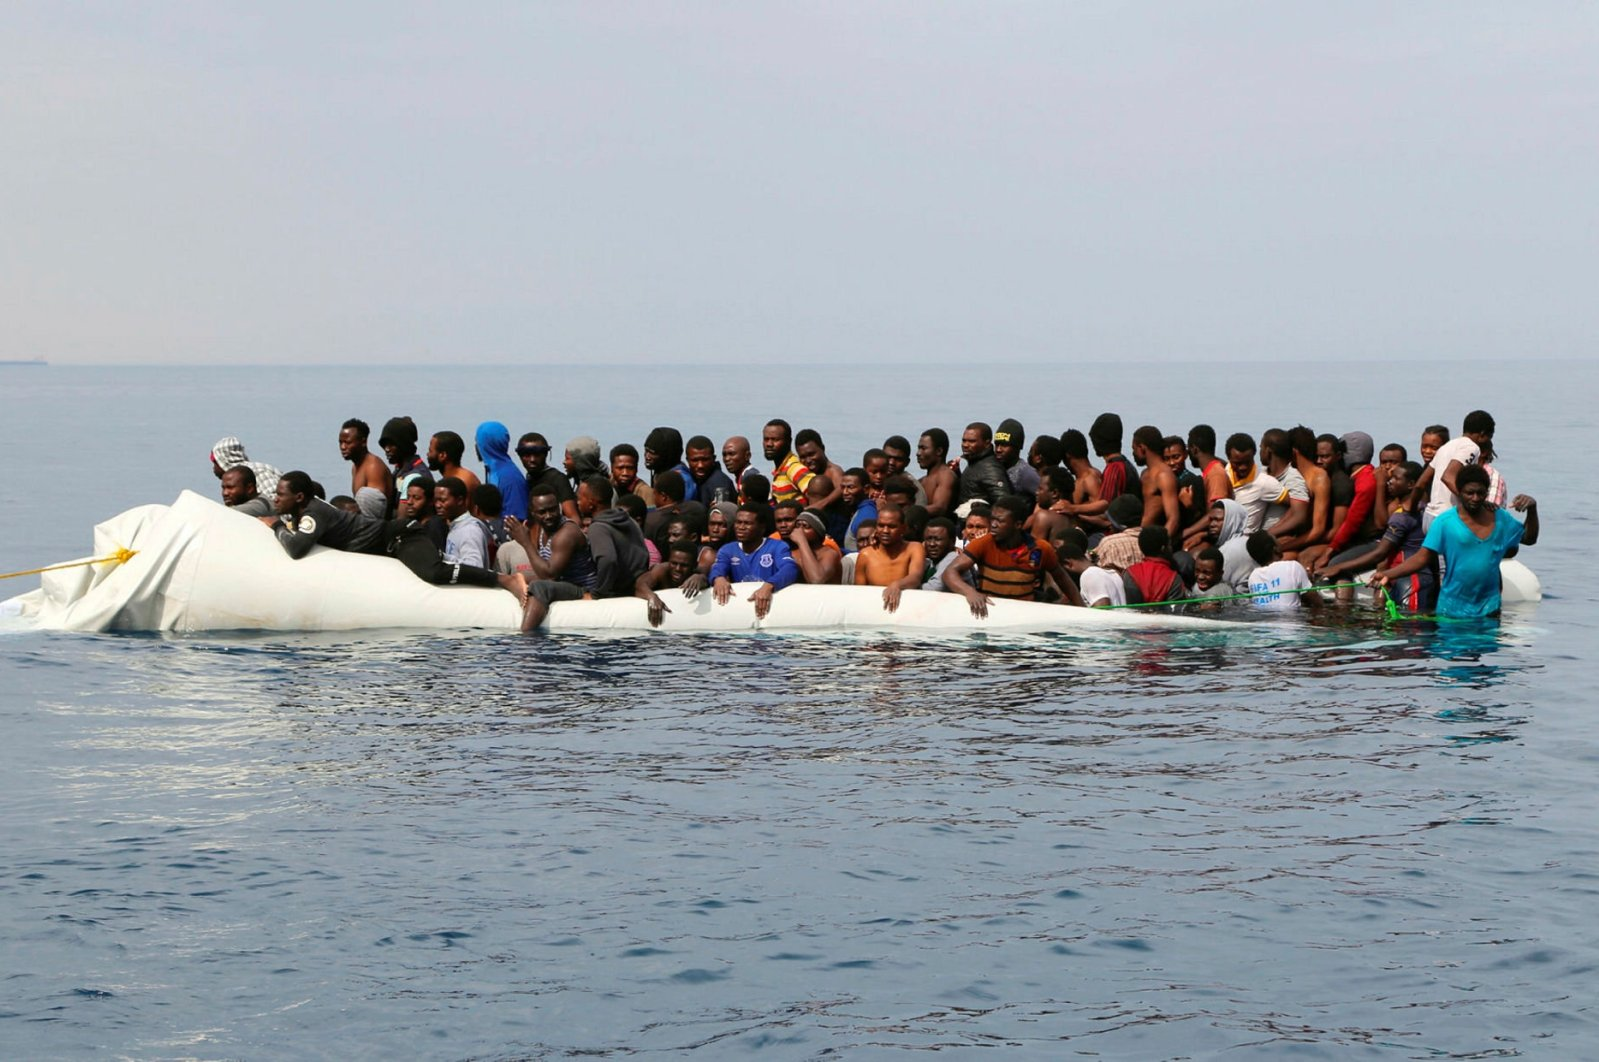 Migrants wait to be rescued from a sinking dinghy off the Libyan coastal town of Zawiyah, east of the capital, after they attempted to cross from the Mediterranean to Europe on March 20, 2017. (AFP Photo)